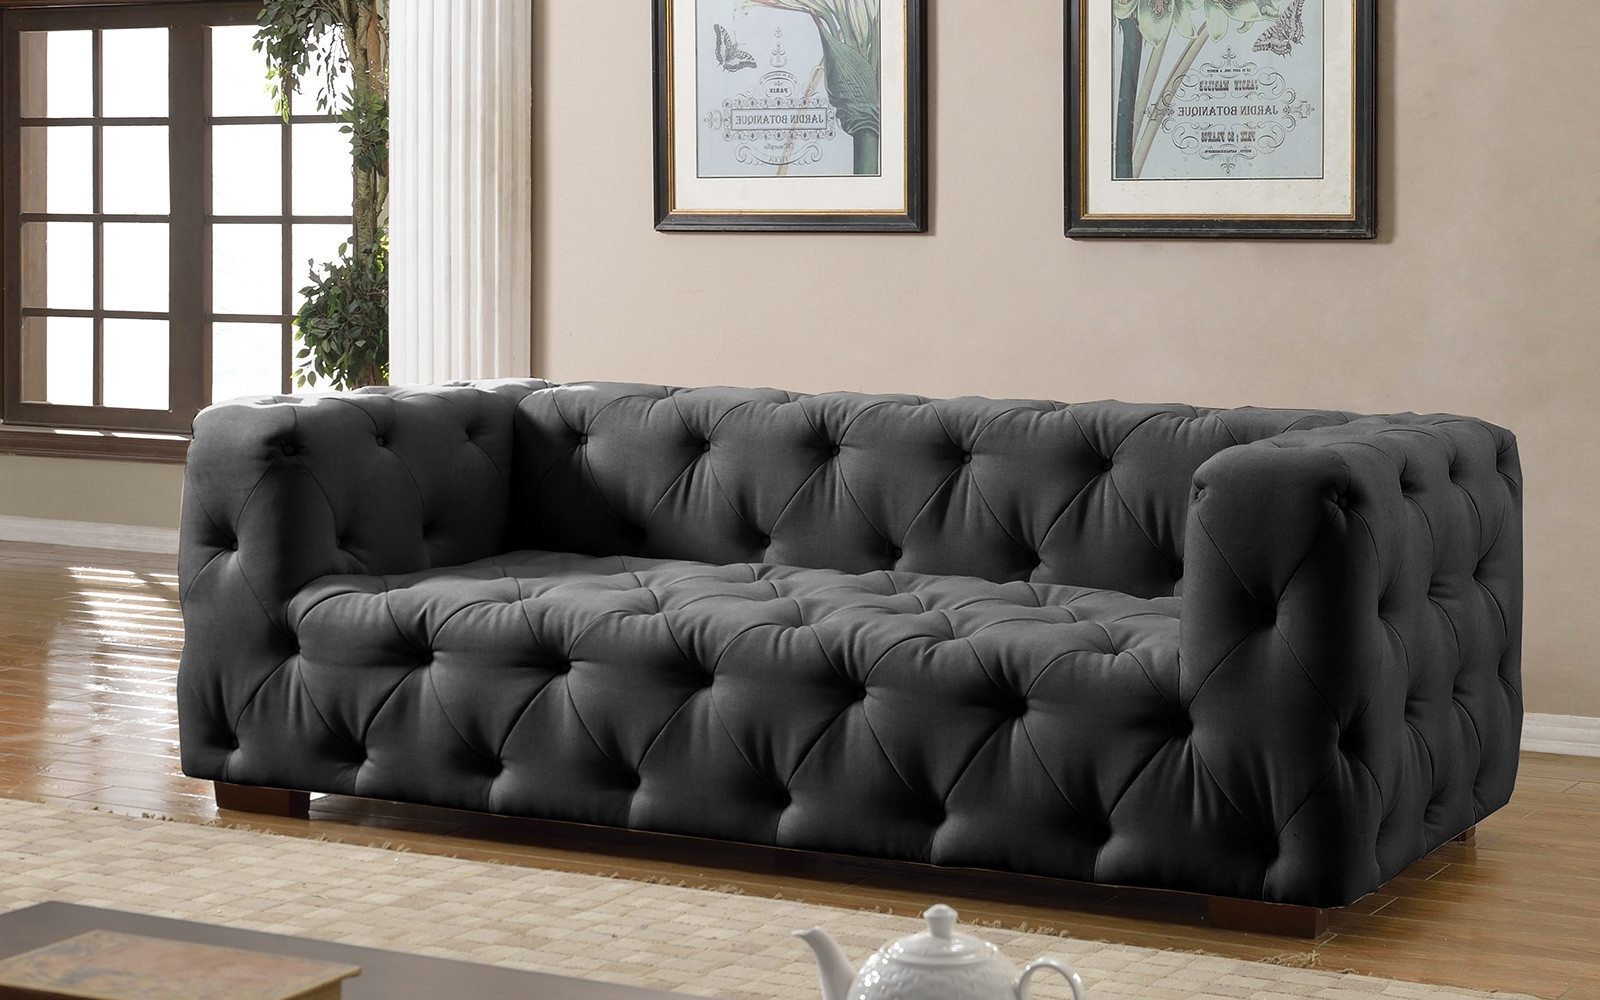 Preferred Tufted Linen Sofas Inside Luxurious Modern Large Tufted Linen Fabric Sofa – Walmart (View 8 of 20)